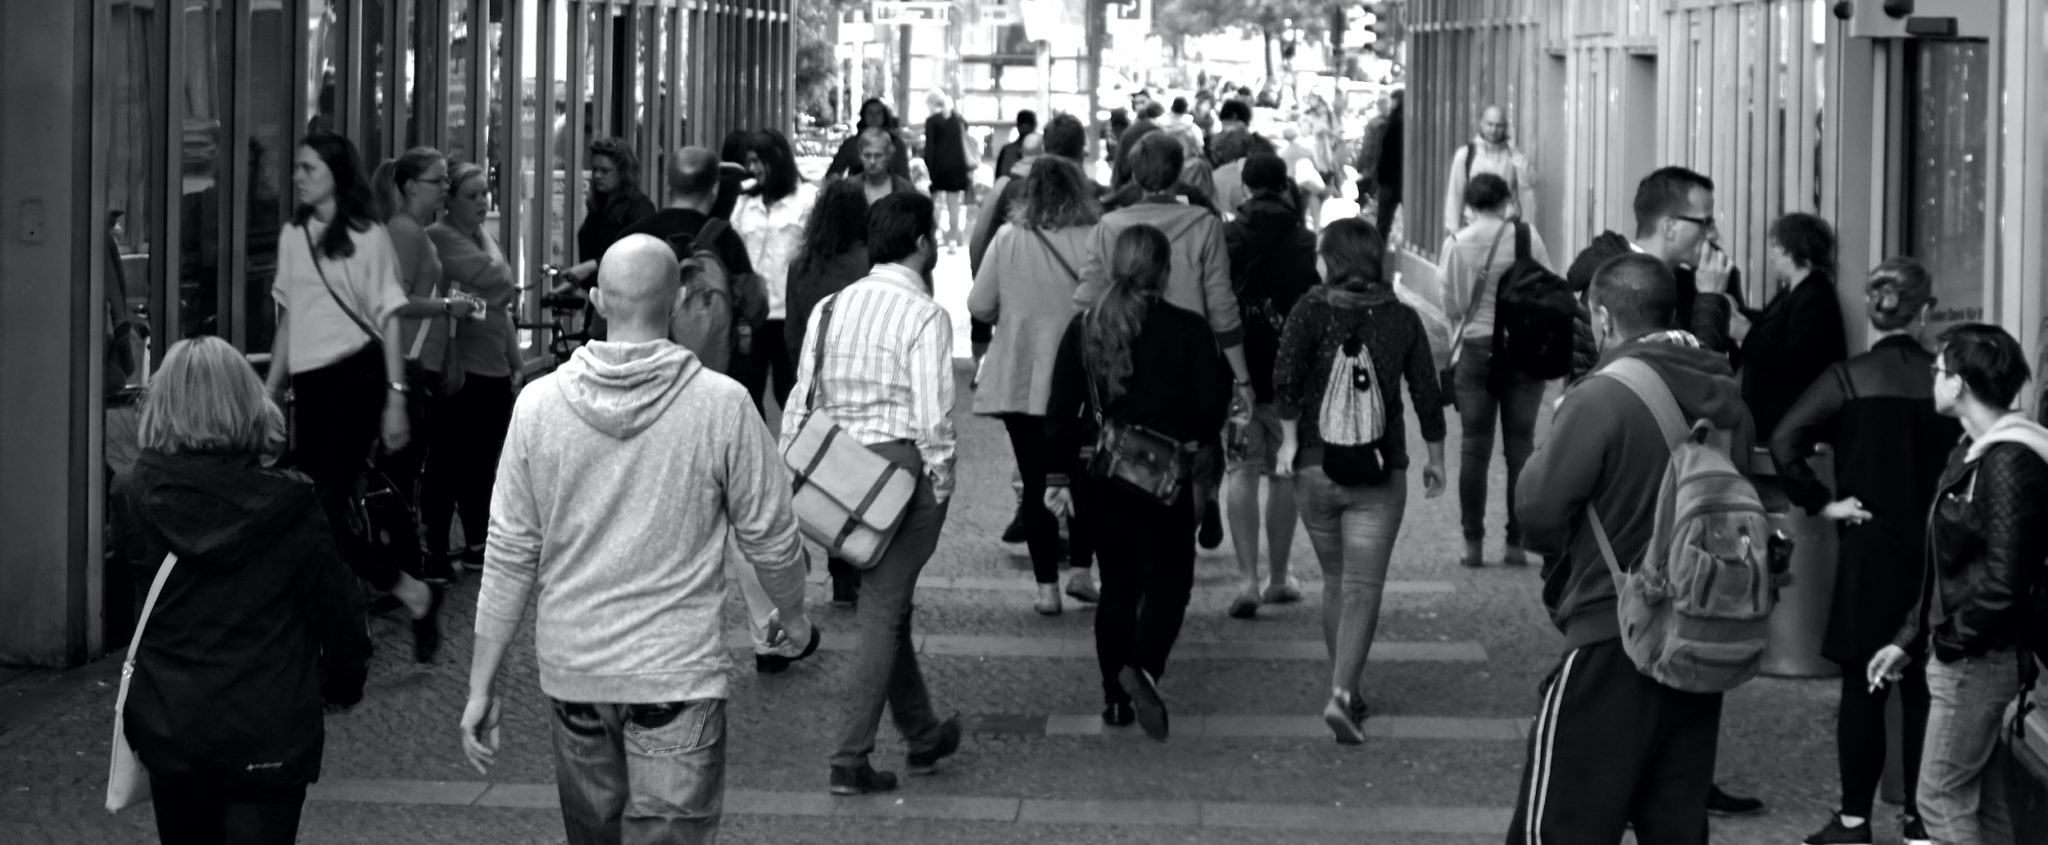 Canva - Grayscale Photography of People Walking Near Buildings